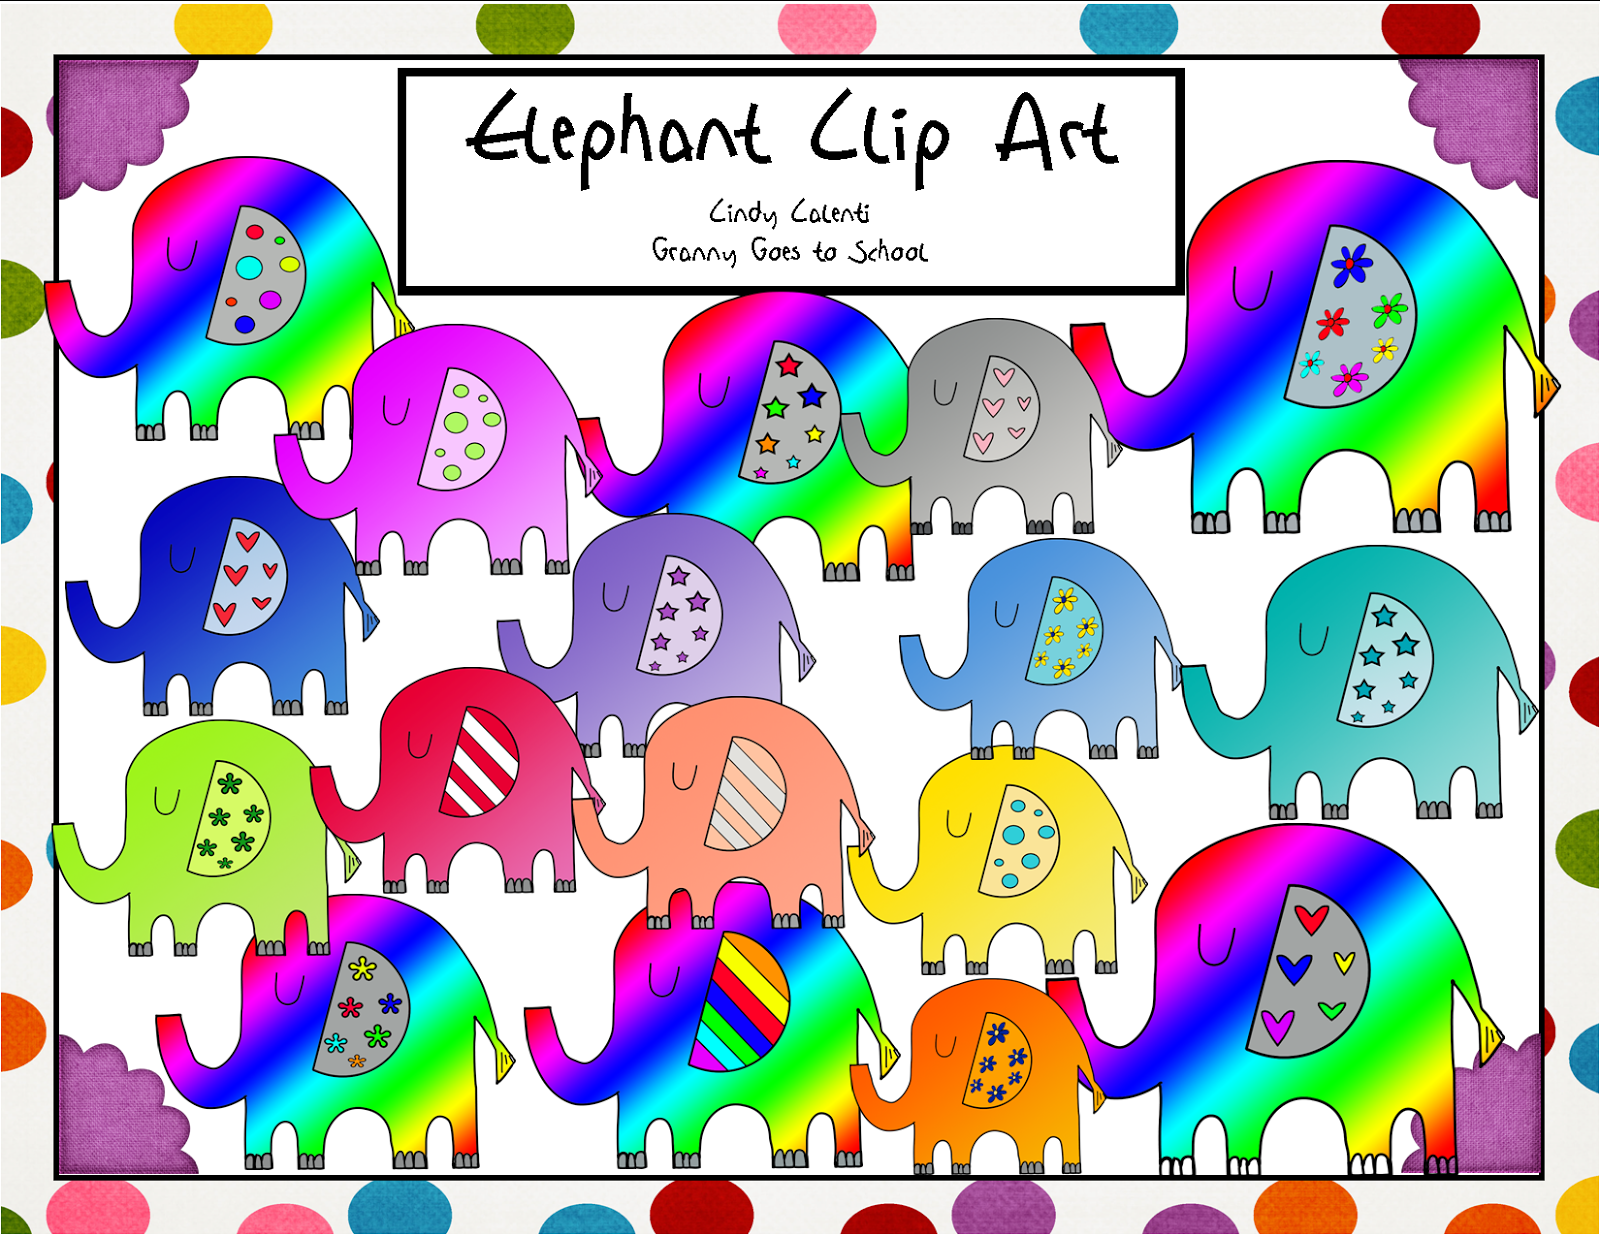 http://www.teacherspayteachers.com/Product/Colorful-Elephant-Clip-Art-24-Images-1414402